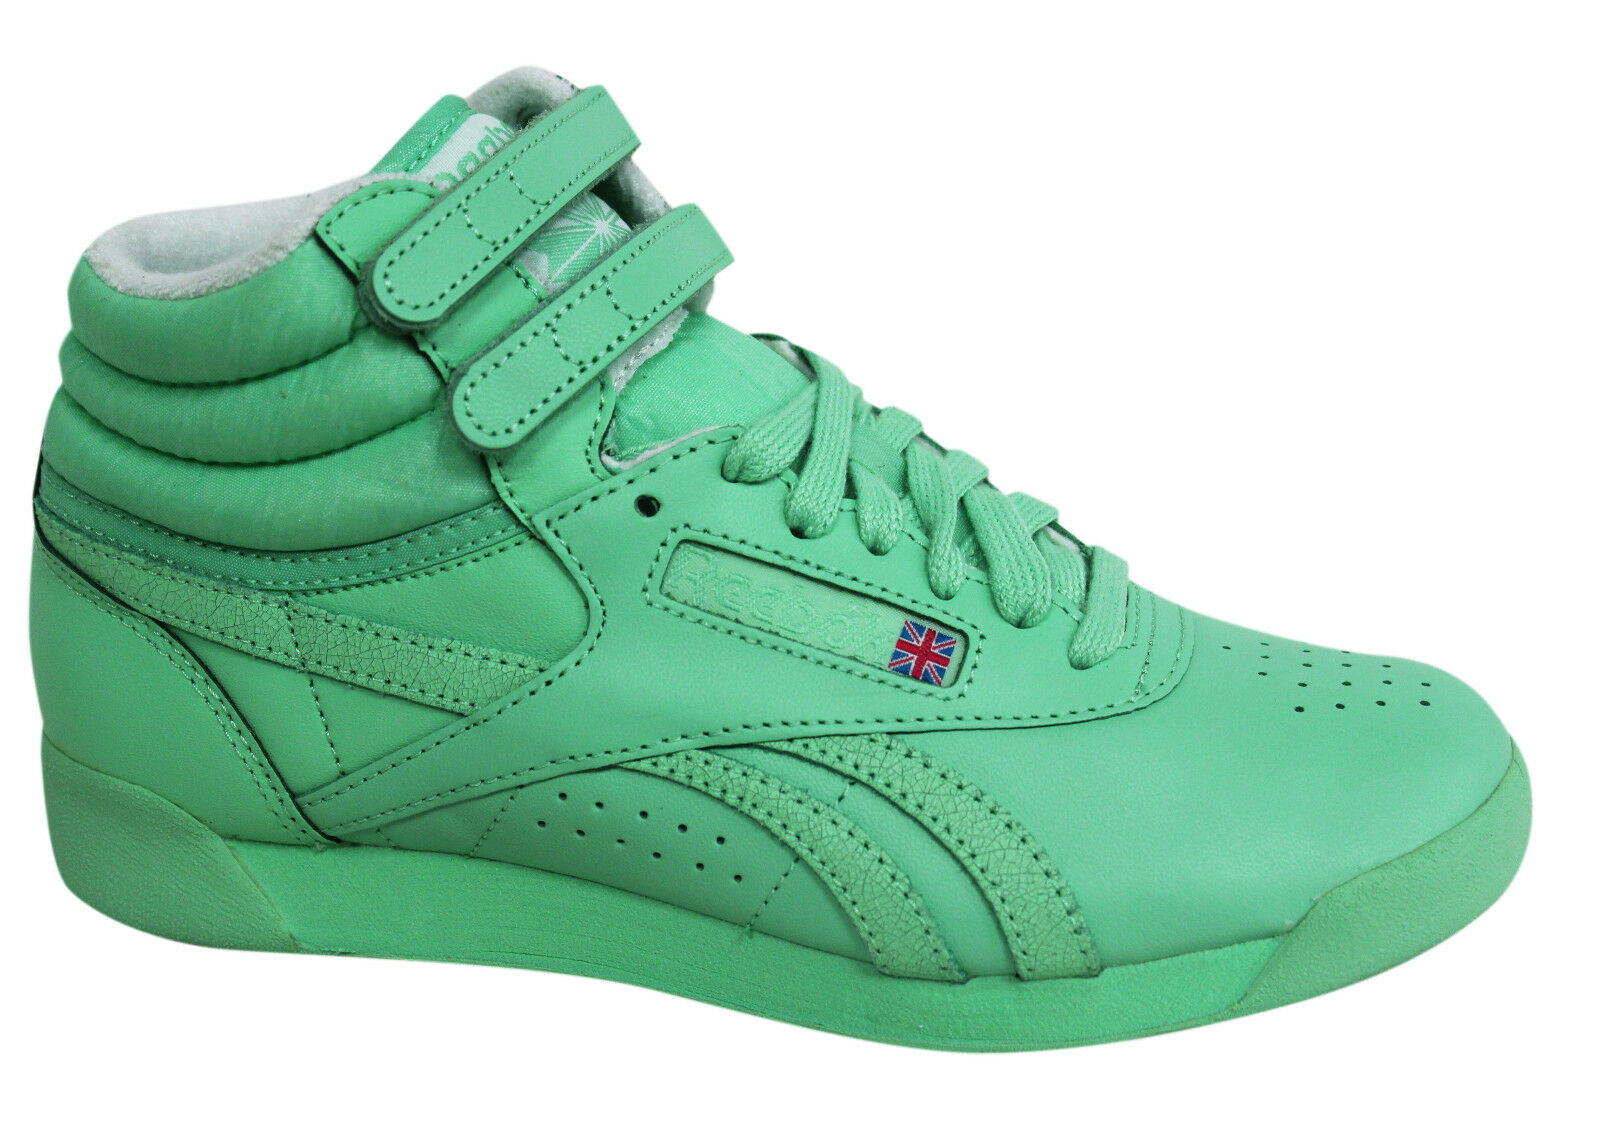 b4913be9a2e1 Reebok F S Classic Spirit Lace Up Mint Green Womens Hi Tops Trainers ...